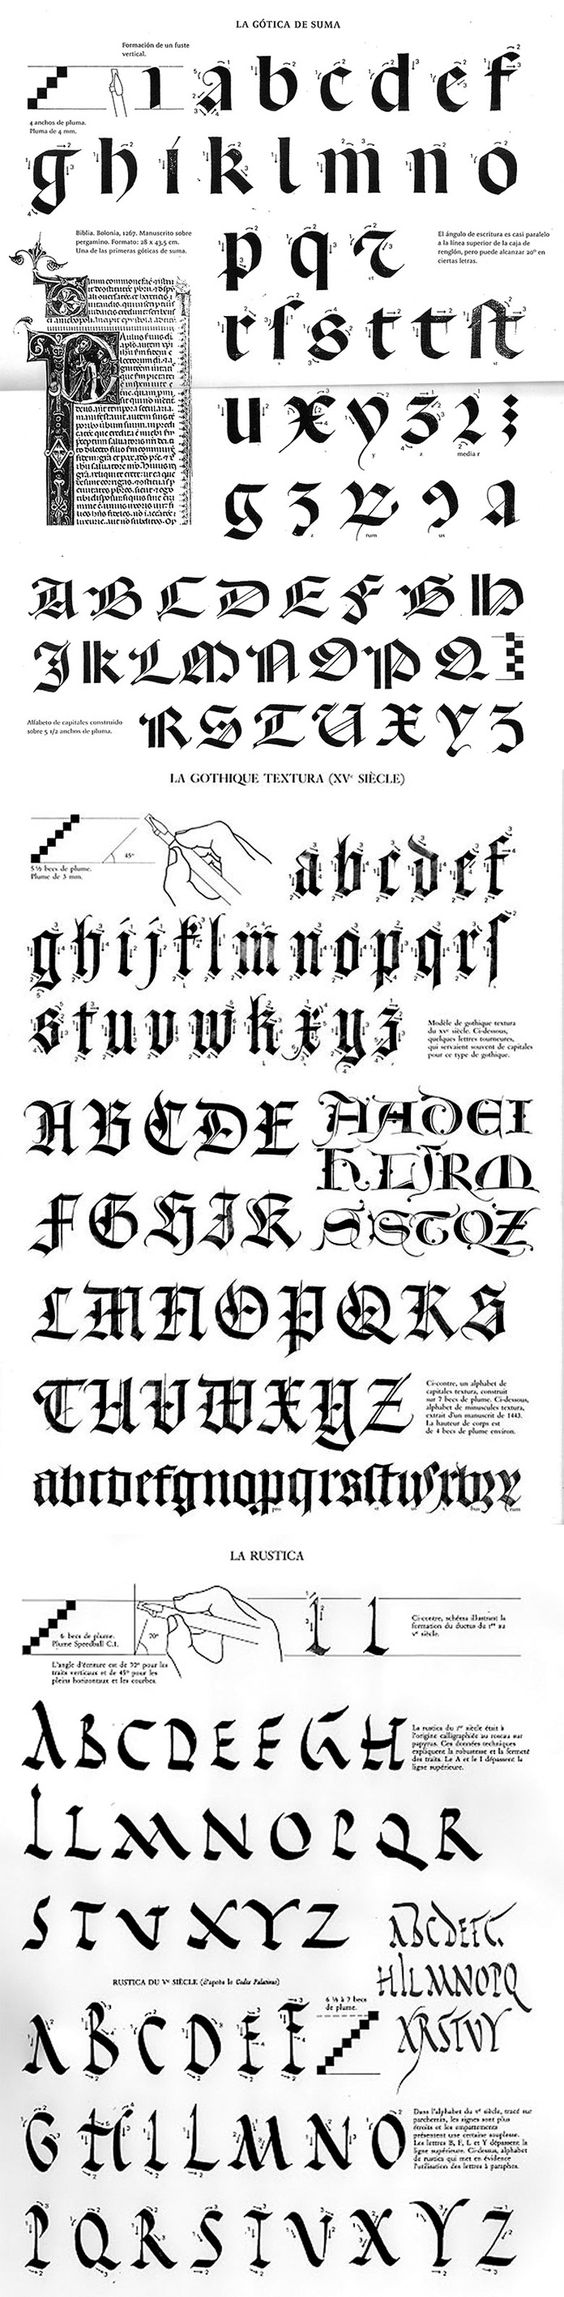 Medieval style calligraphy http indexgrafik claude